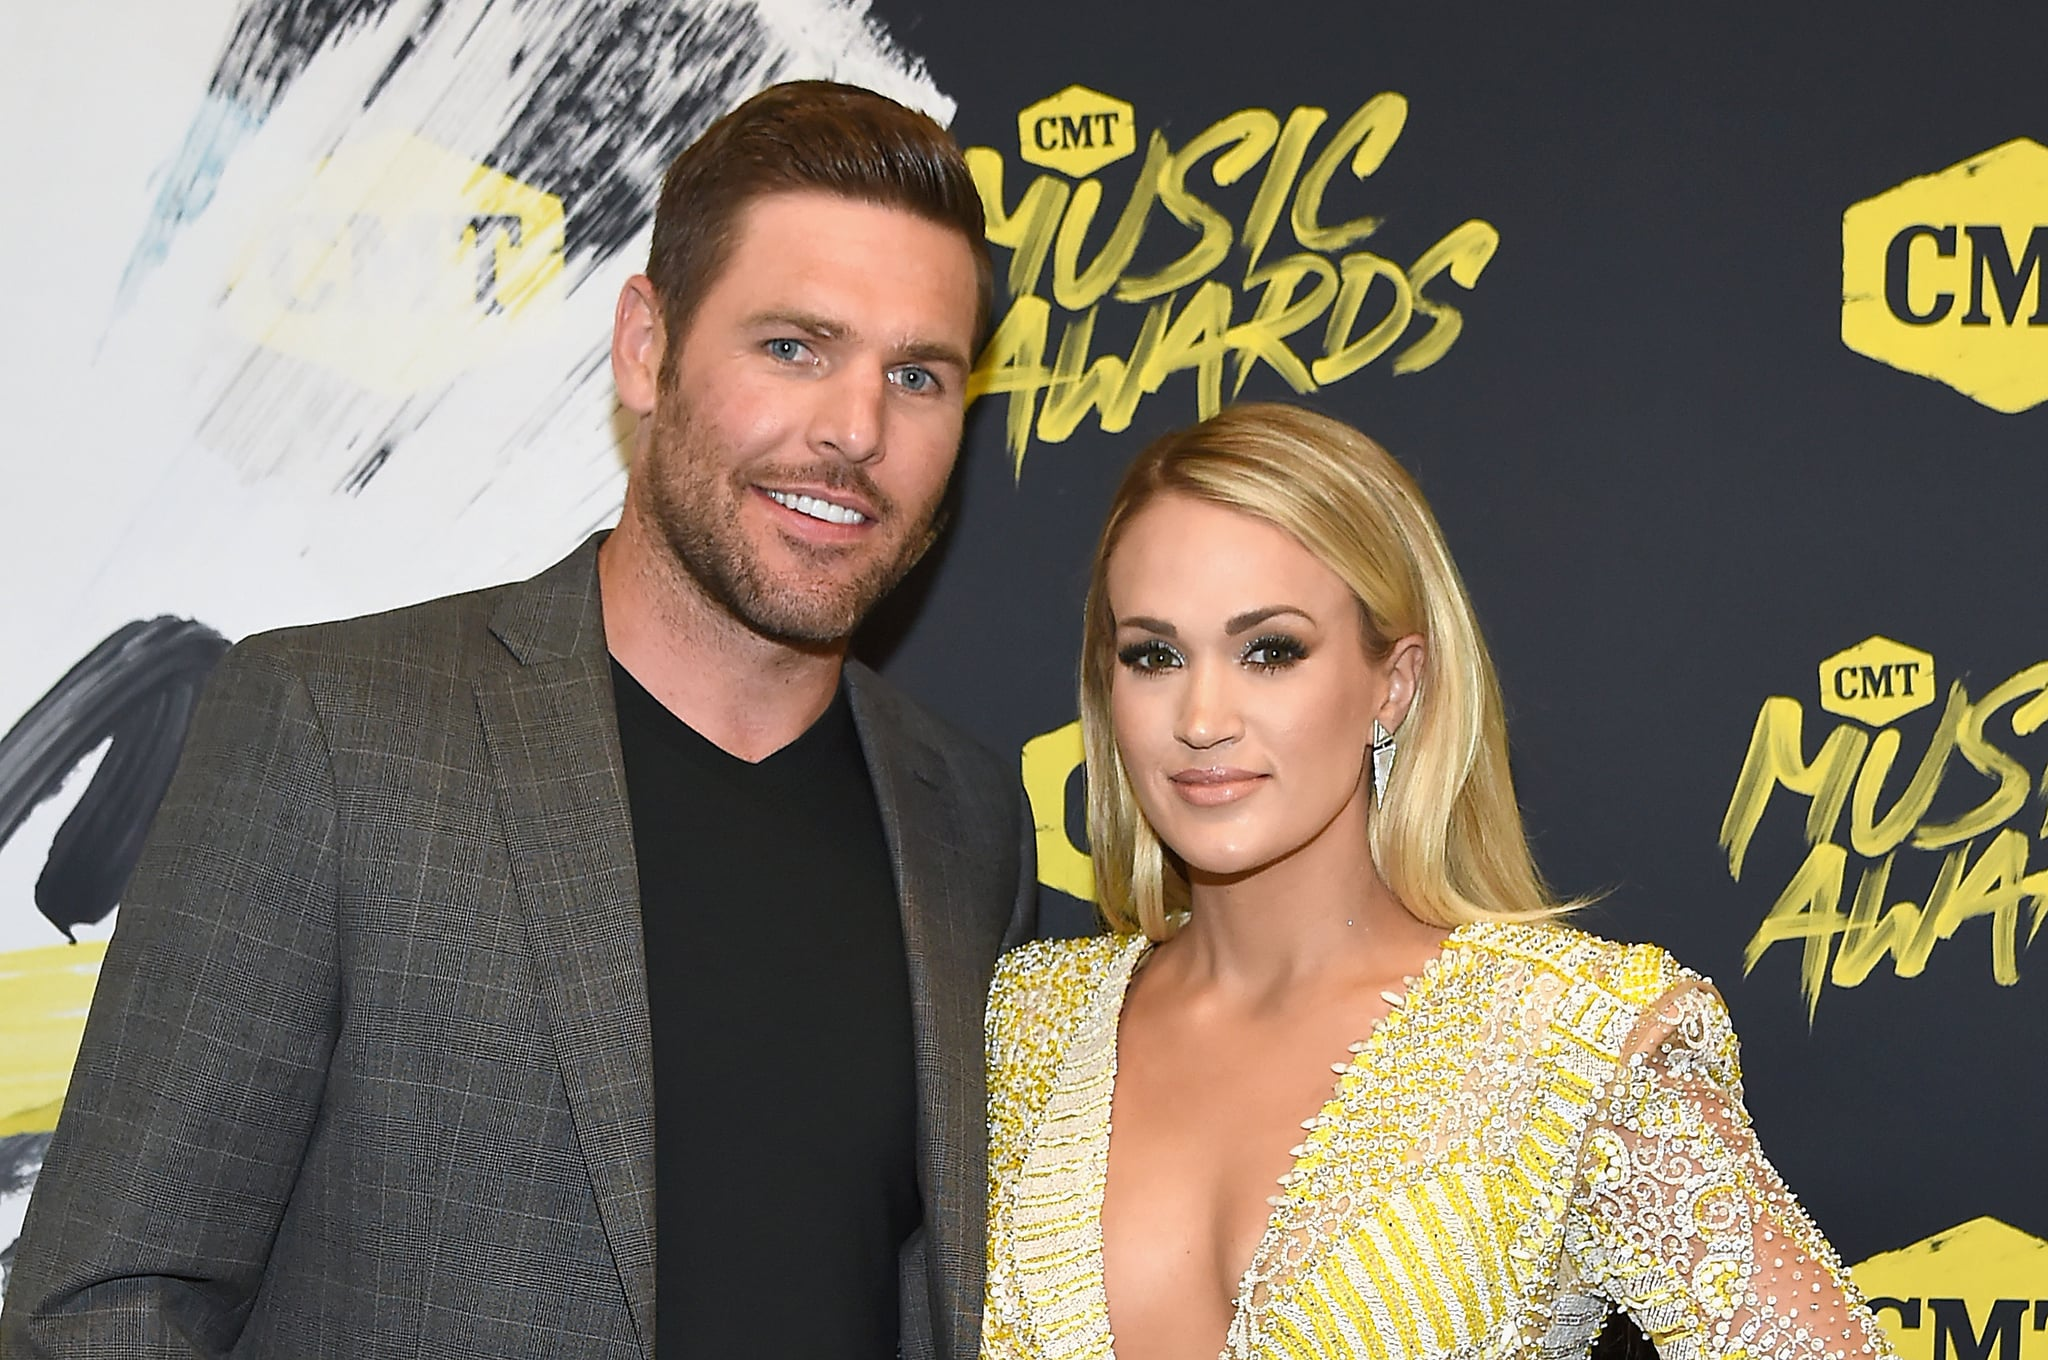 NASHVILLE, TN - JUNE 06:  Mike Fisher (L) and Carrie Underwood attend the 2018 CMT Music Awards at Bridgestone Arena on June 6, 2018 in Nashville, Tennessee.  (Photo by Rick Diamond/Getty Images for CMT)